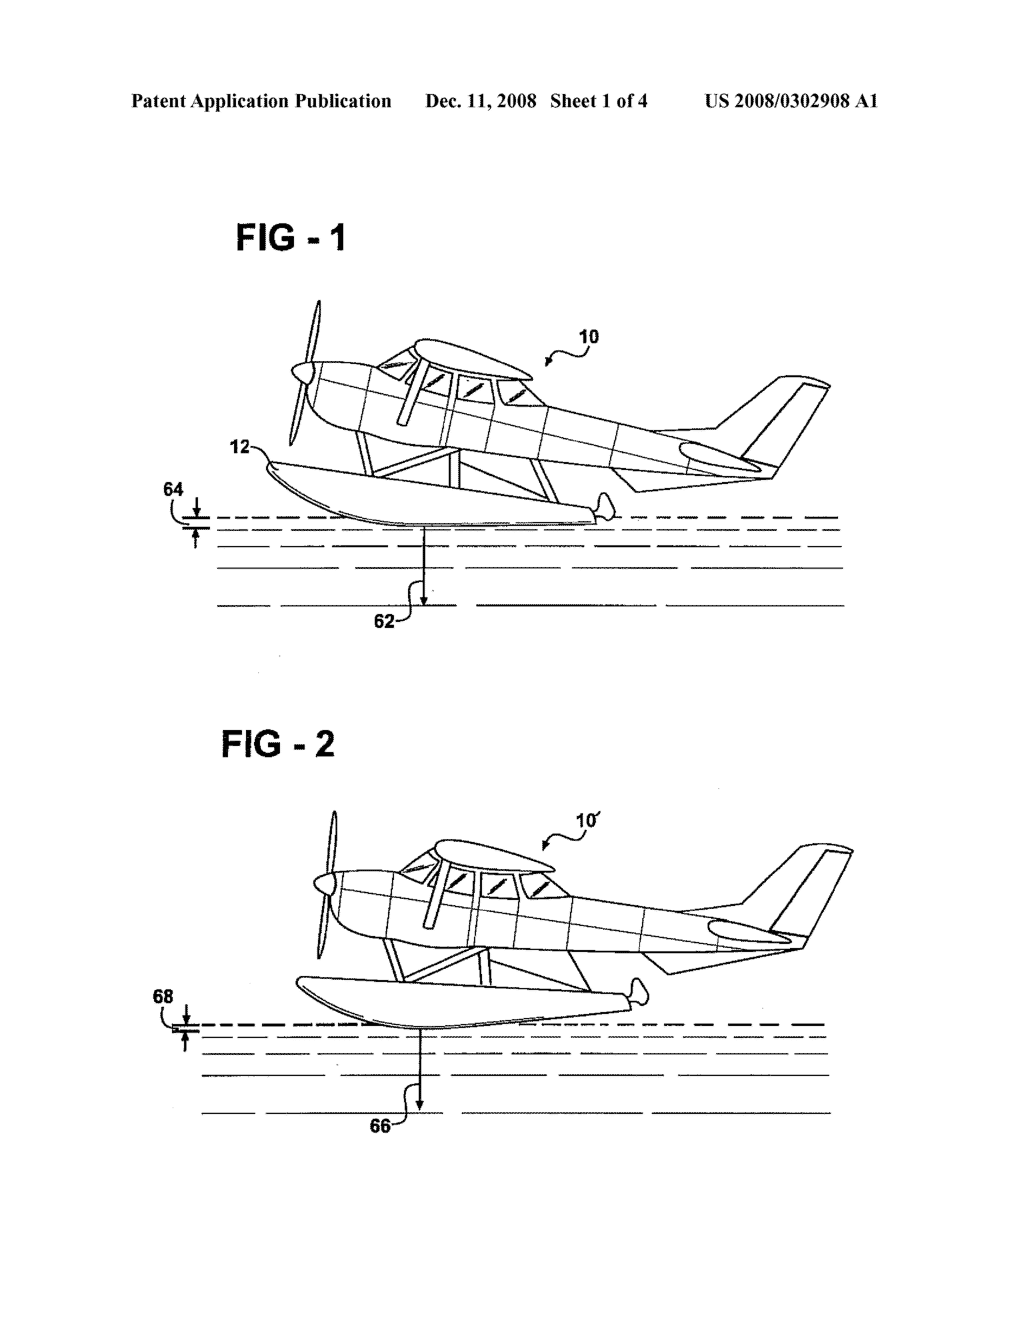 hight resolution of detachable hydrofoil trim tabs for use with seaplane floats for assisting with lower speed on plane condition and stability during step turning chine walk